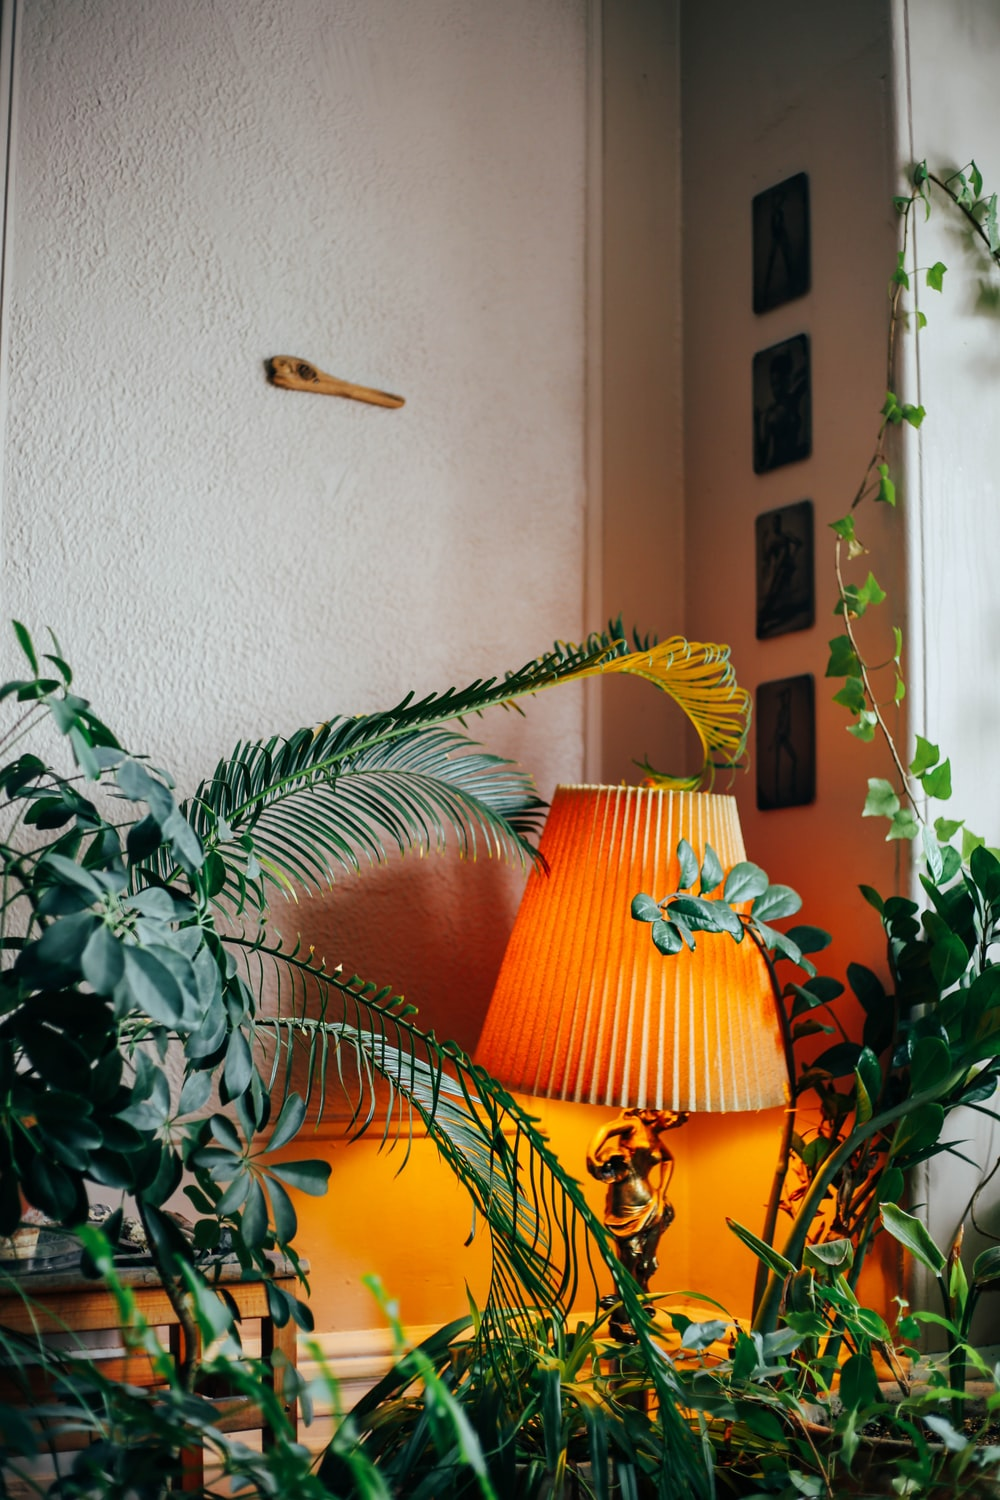 brown and yellow table lamp